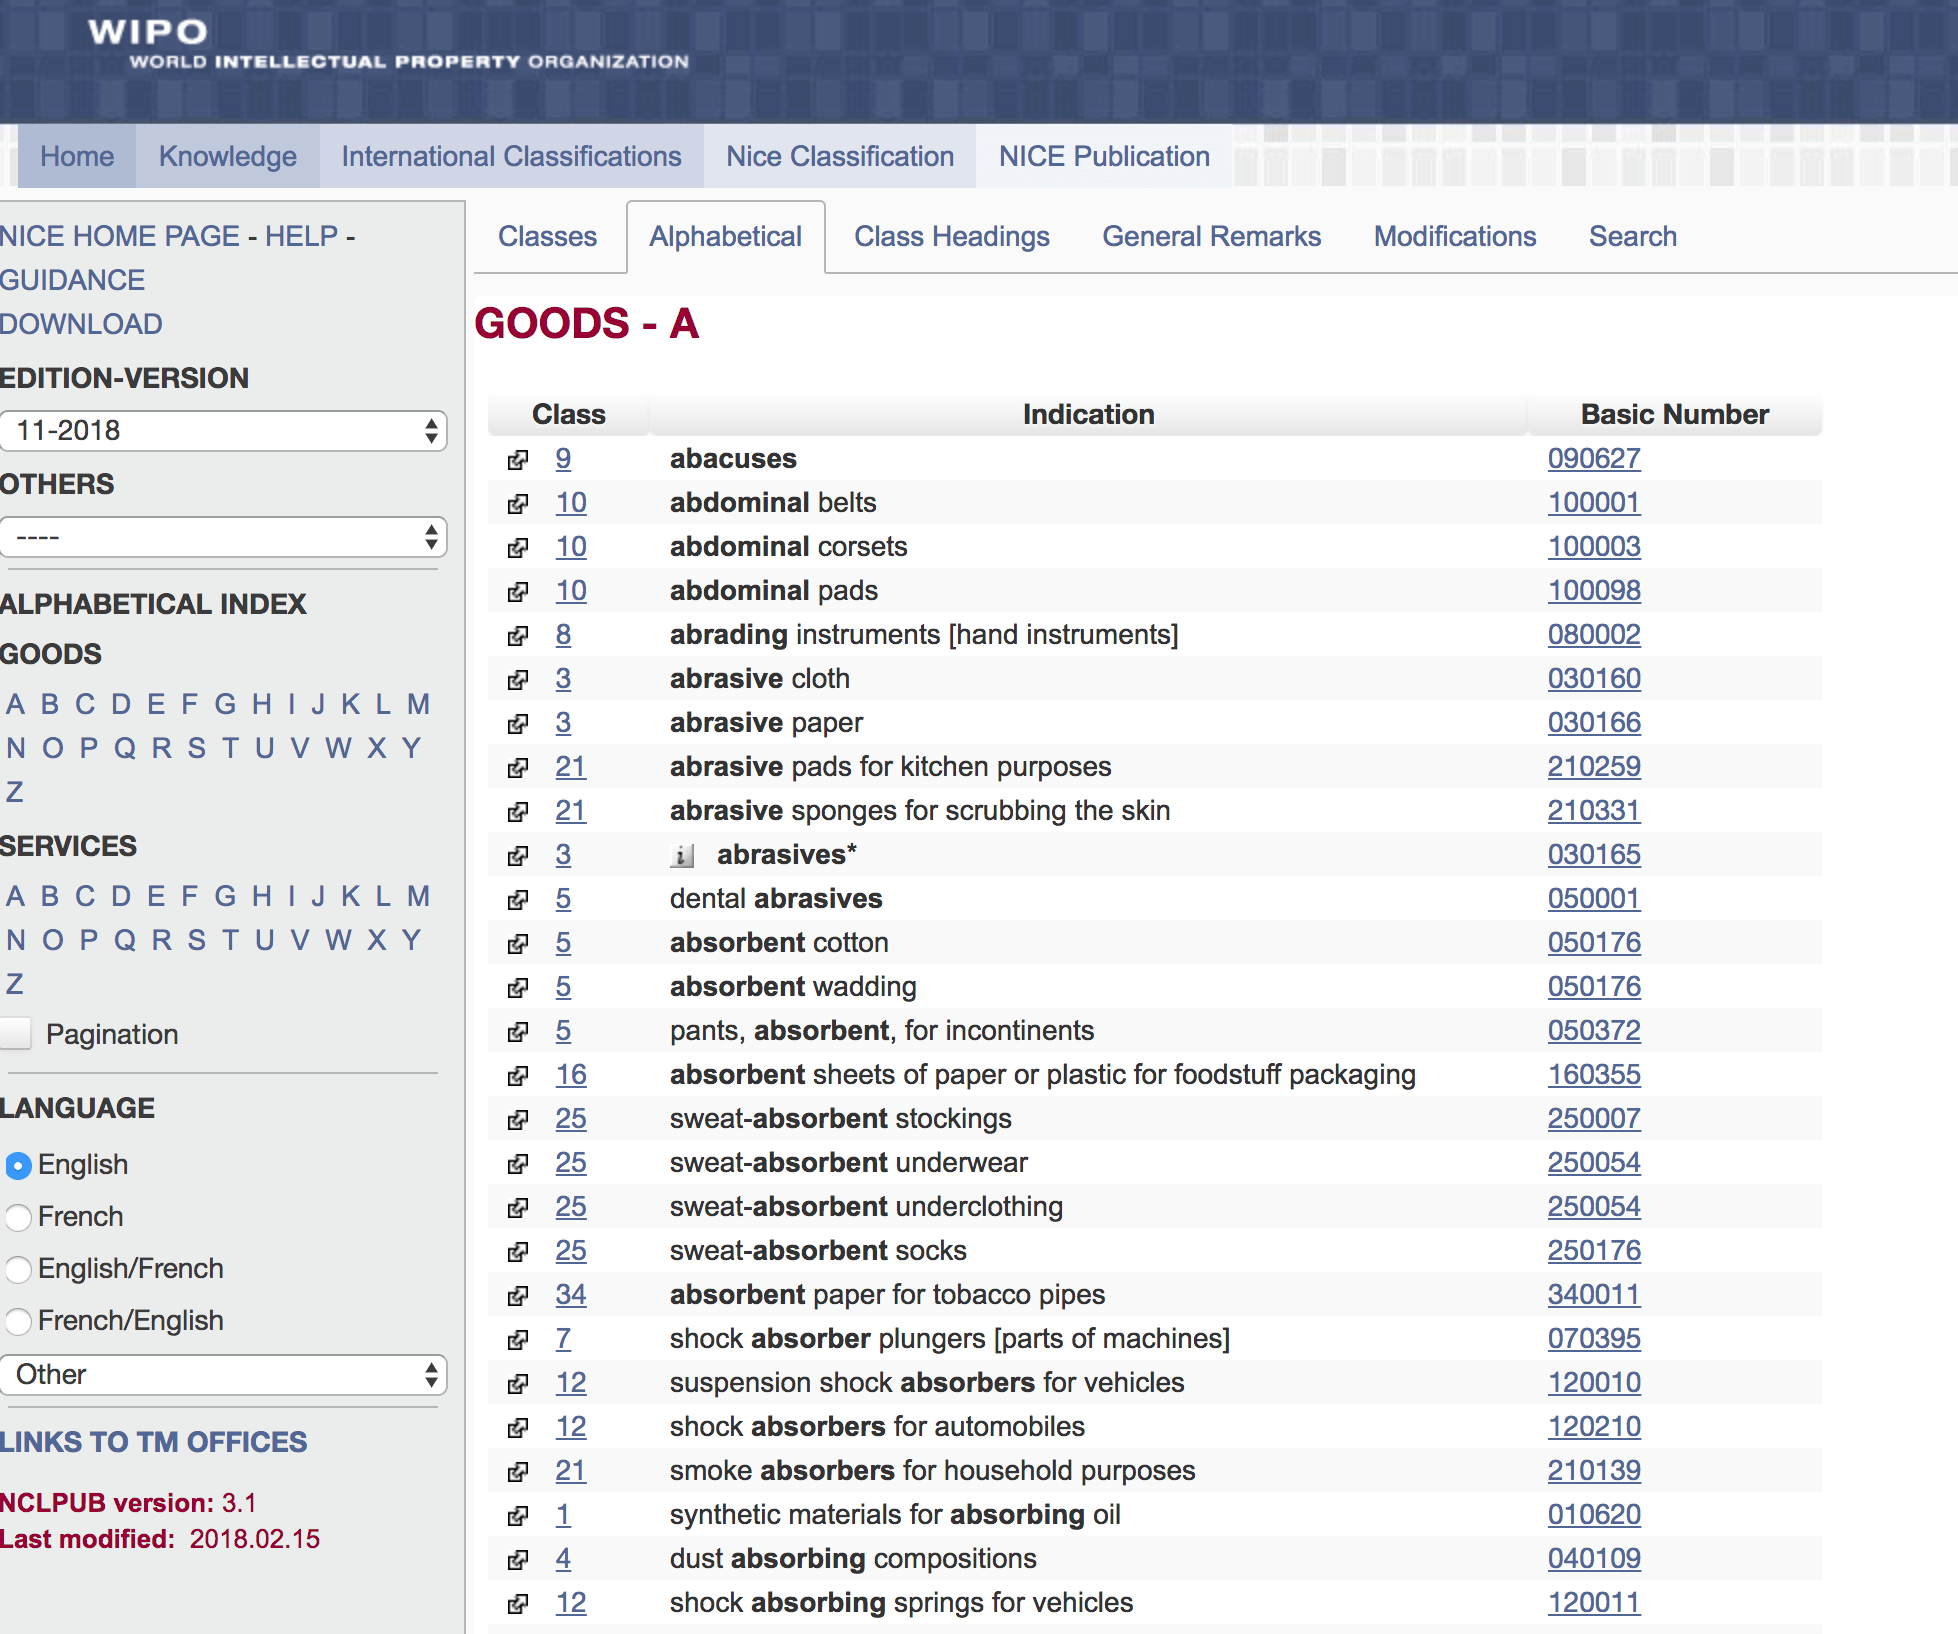 WIPO international class search function